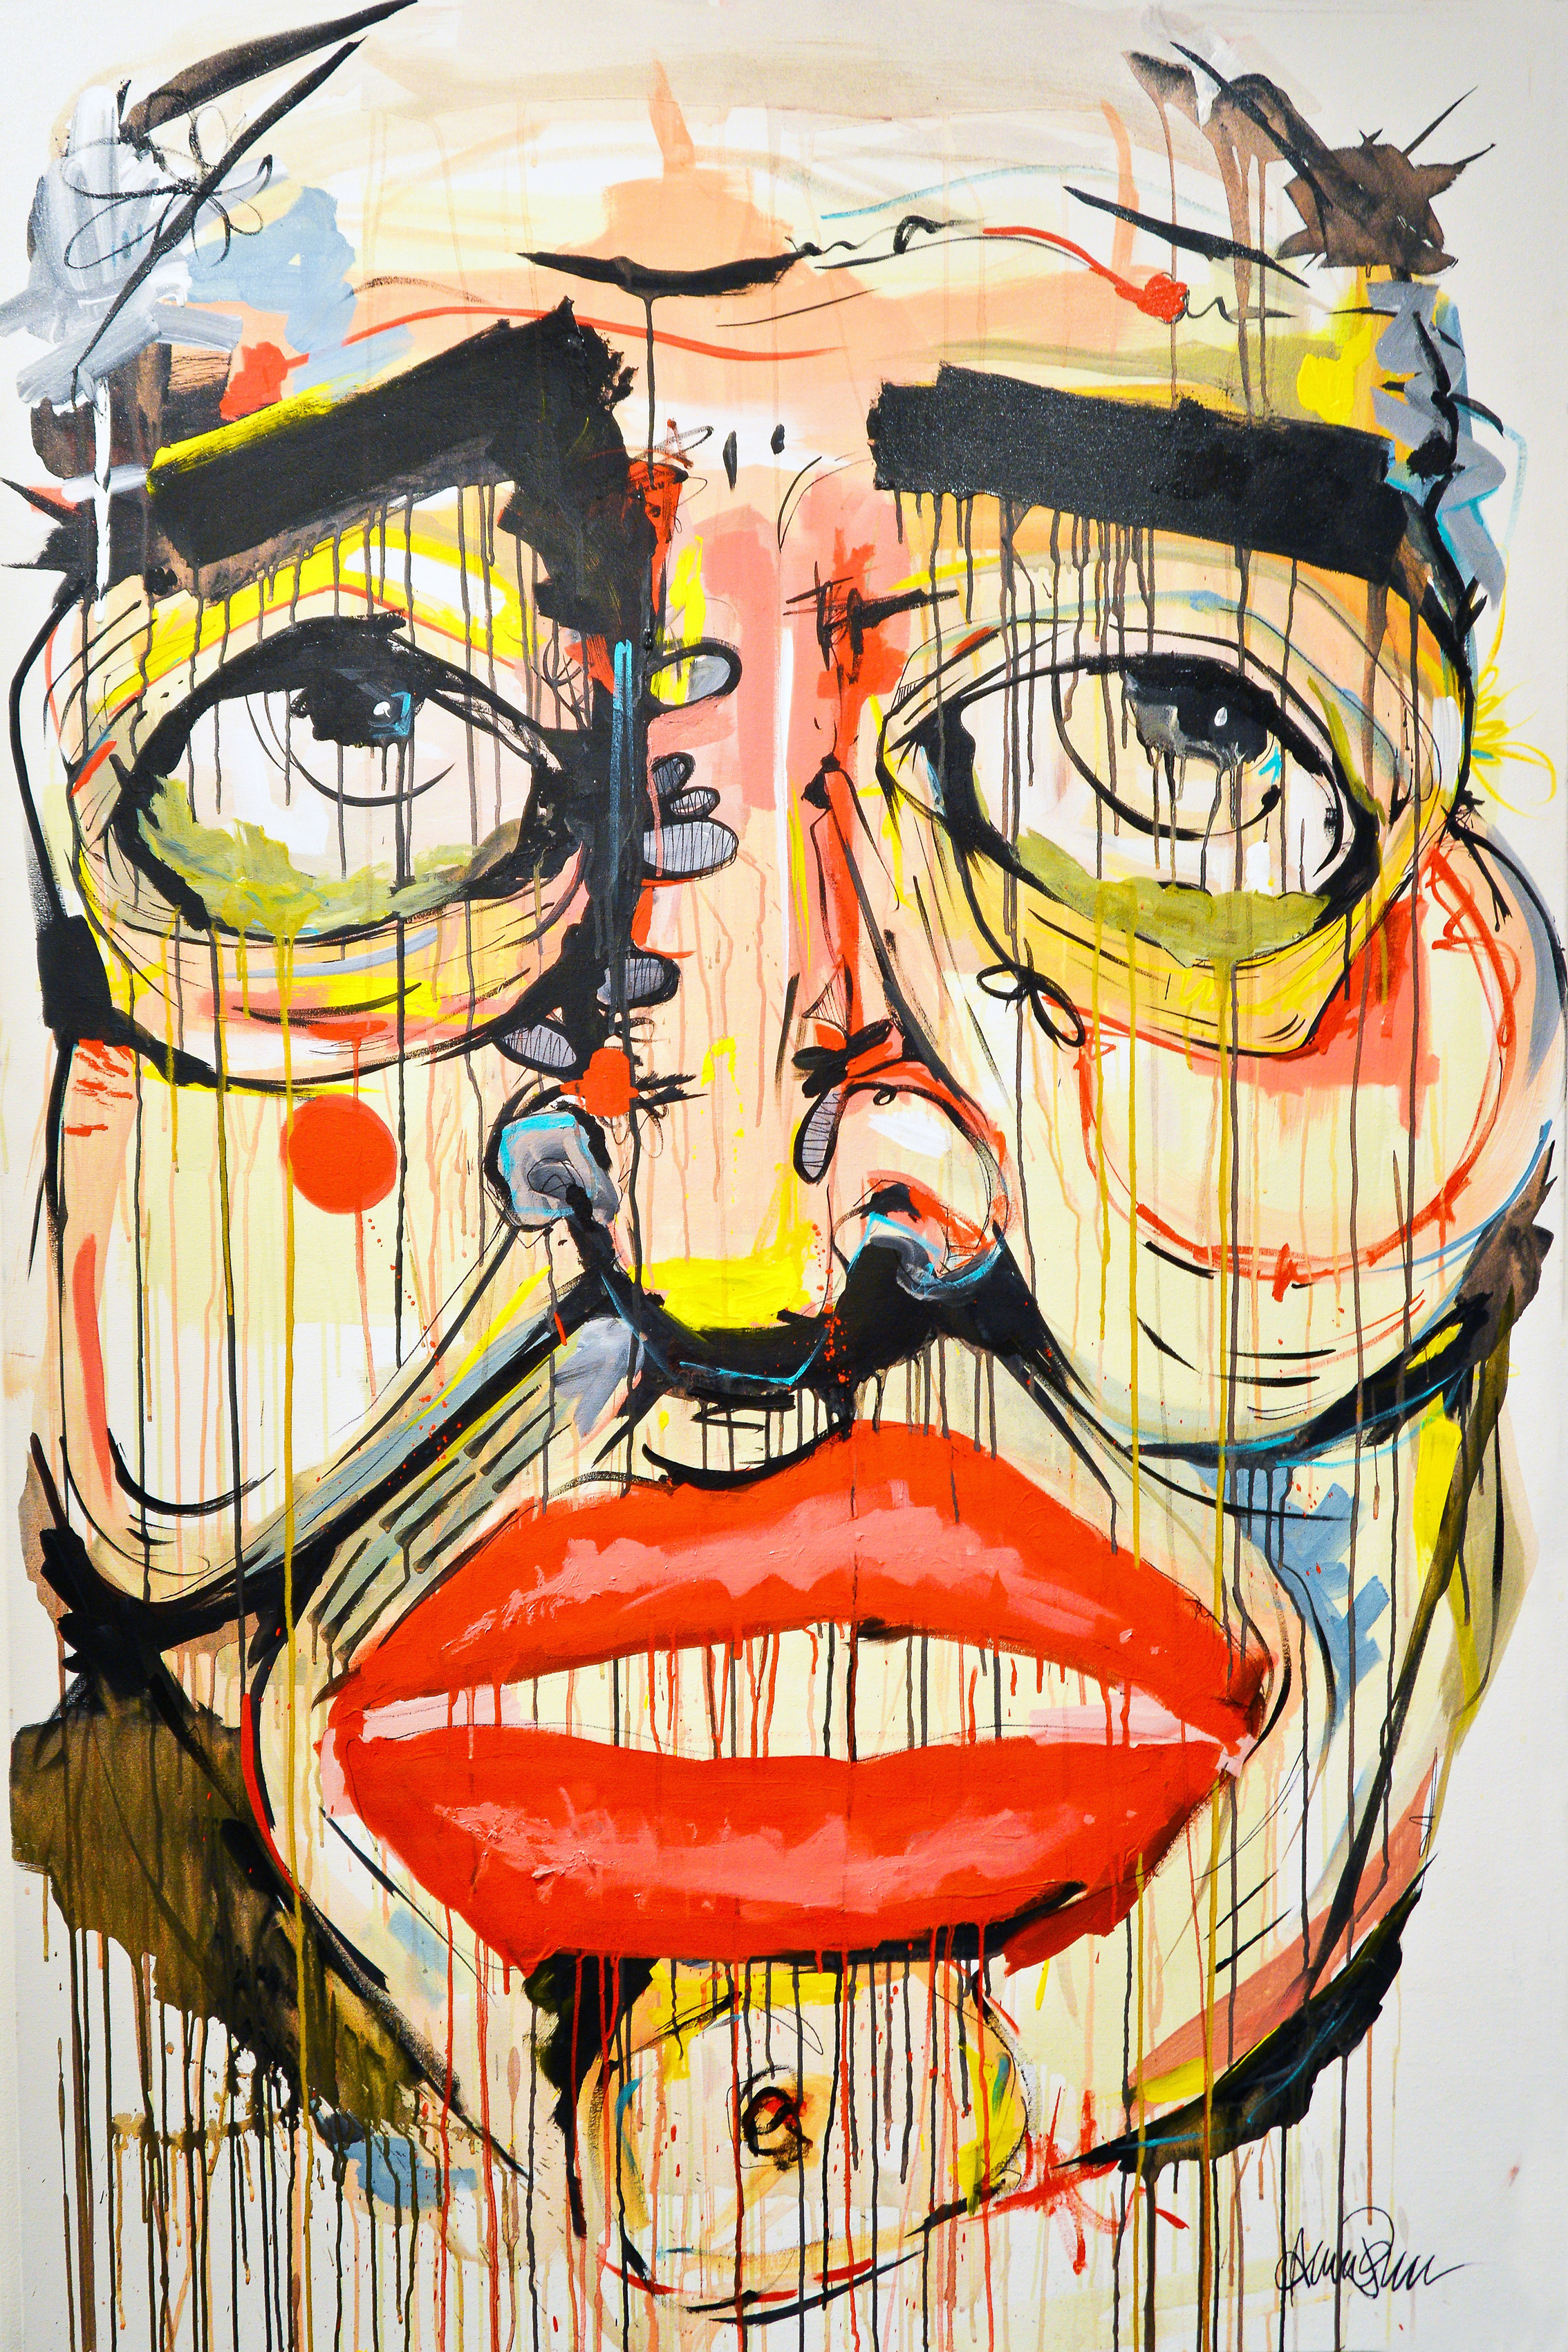 Home Decoration Artwork Painting Face Portrait Display Lips Colorful Emotions Paint Splatter Eyes Open Mouth Poster Qr101 Painting Faces Splatter Paintface Painting Poster Aliexpress